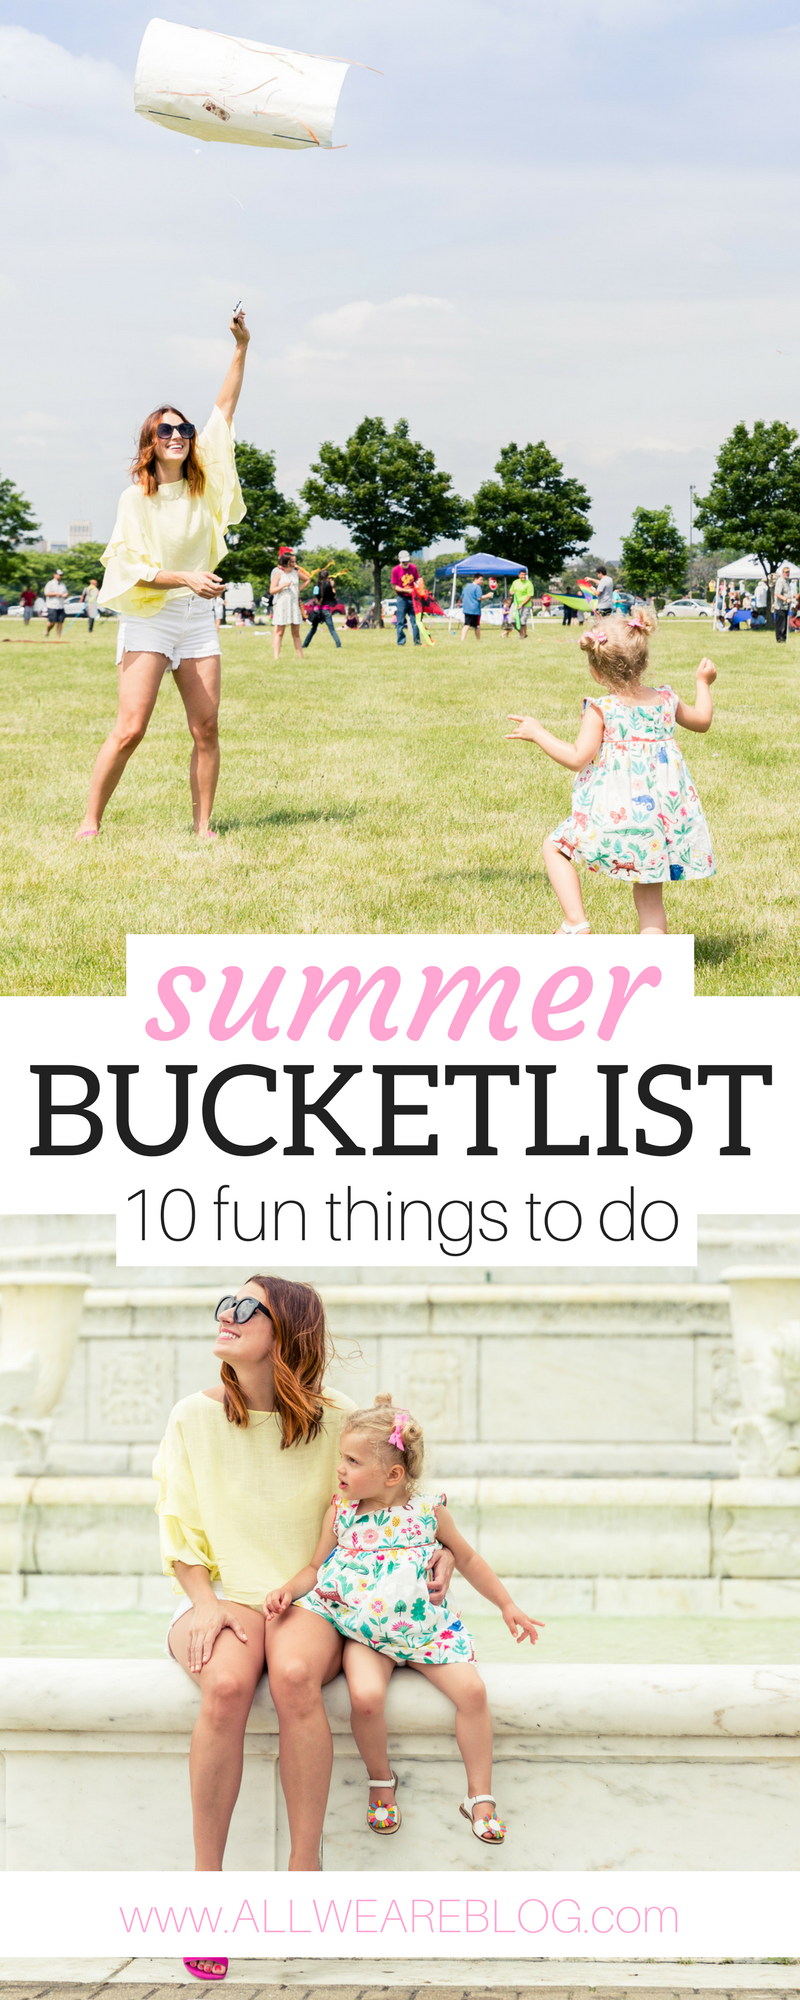 Summer Bucketlist - 10 fun things to do